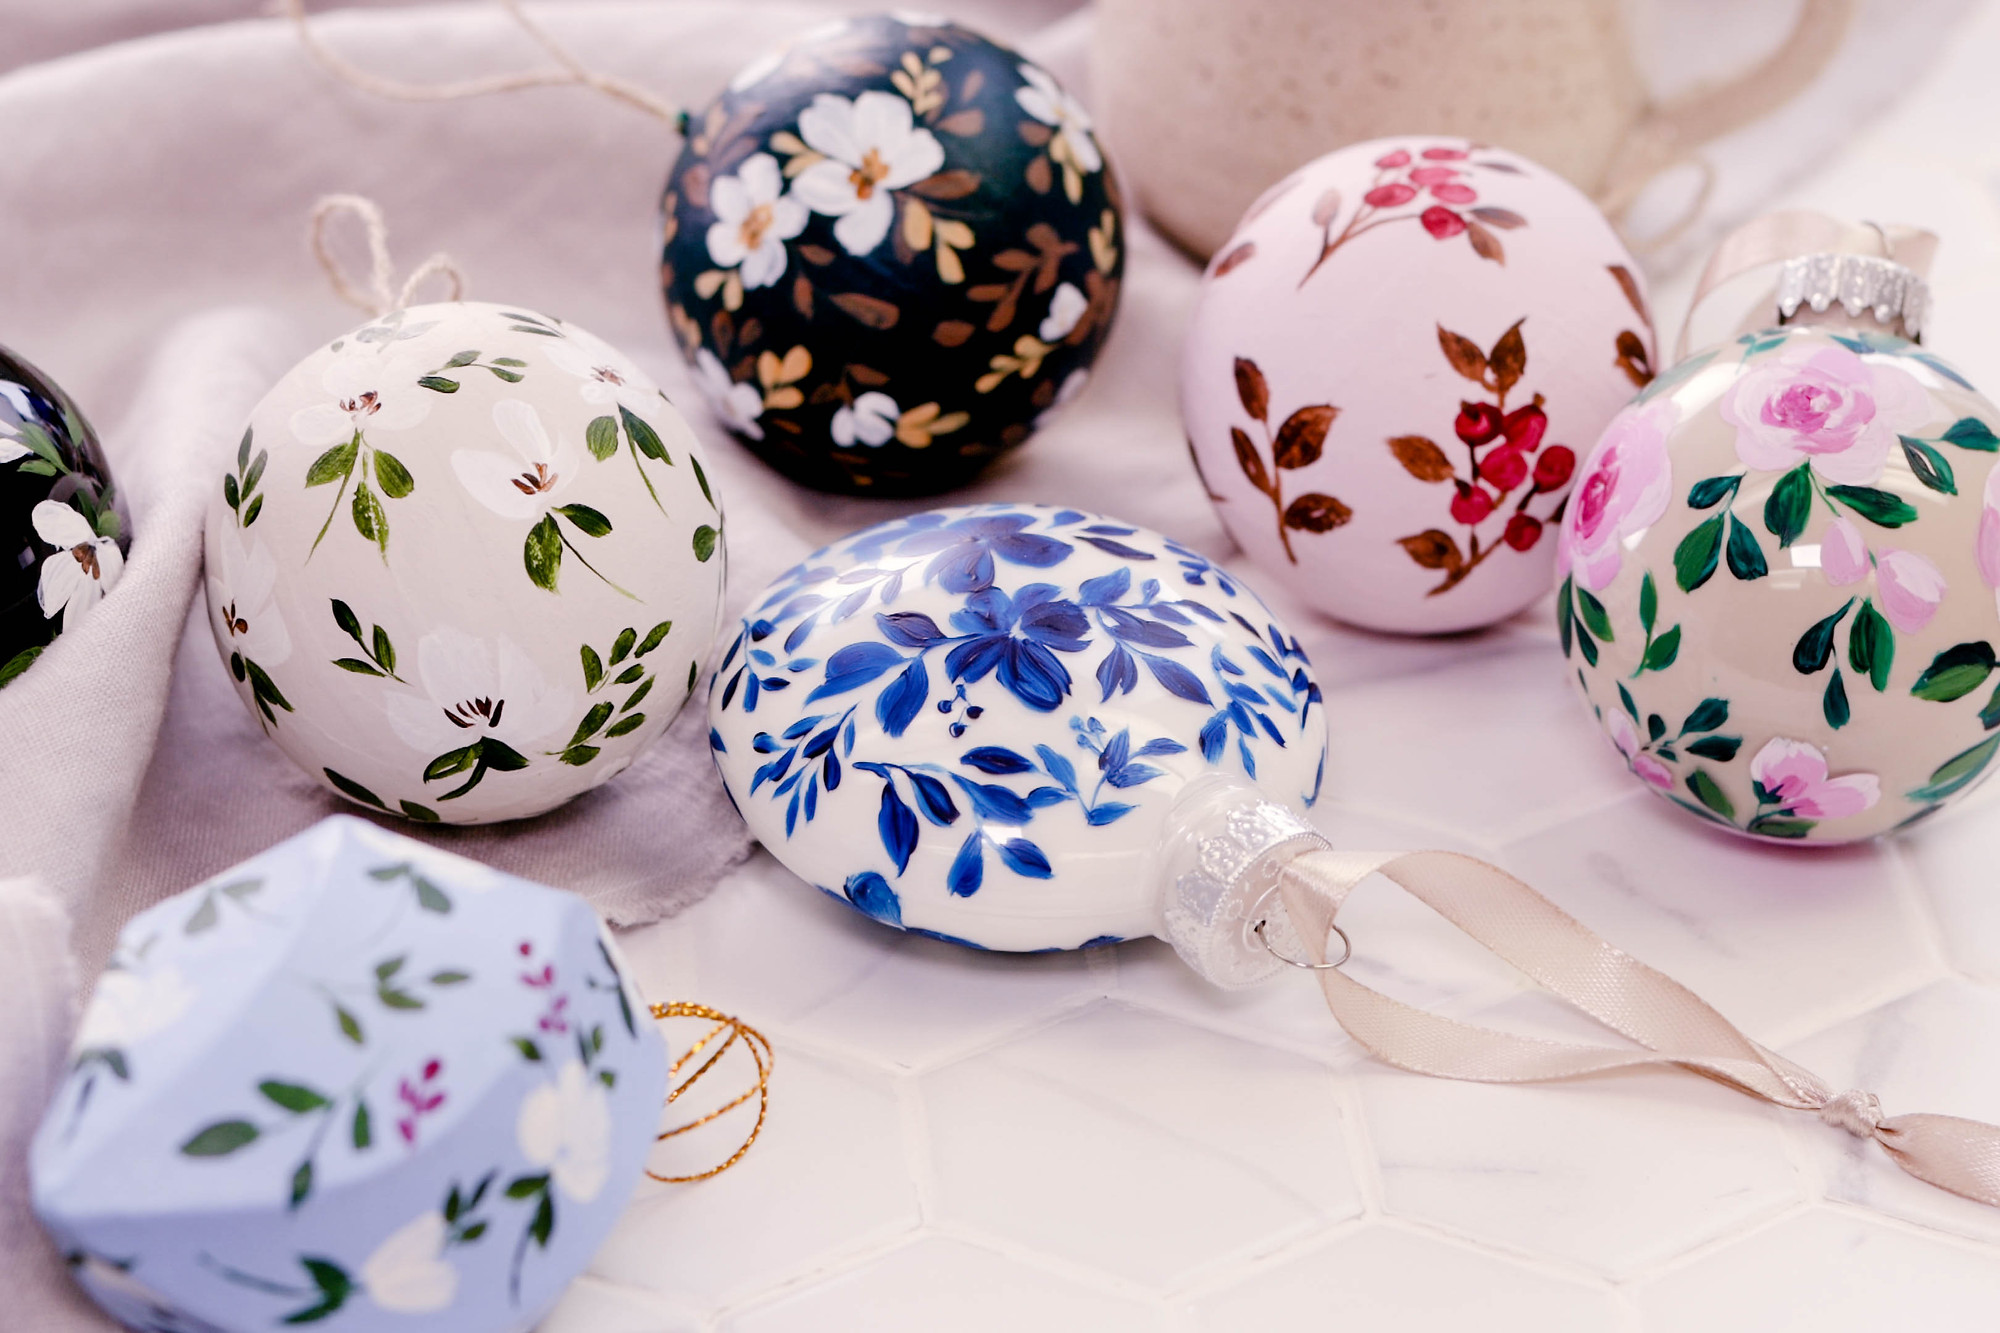 Diy Hand Painted Christmas Tree Ornaments